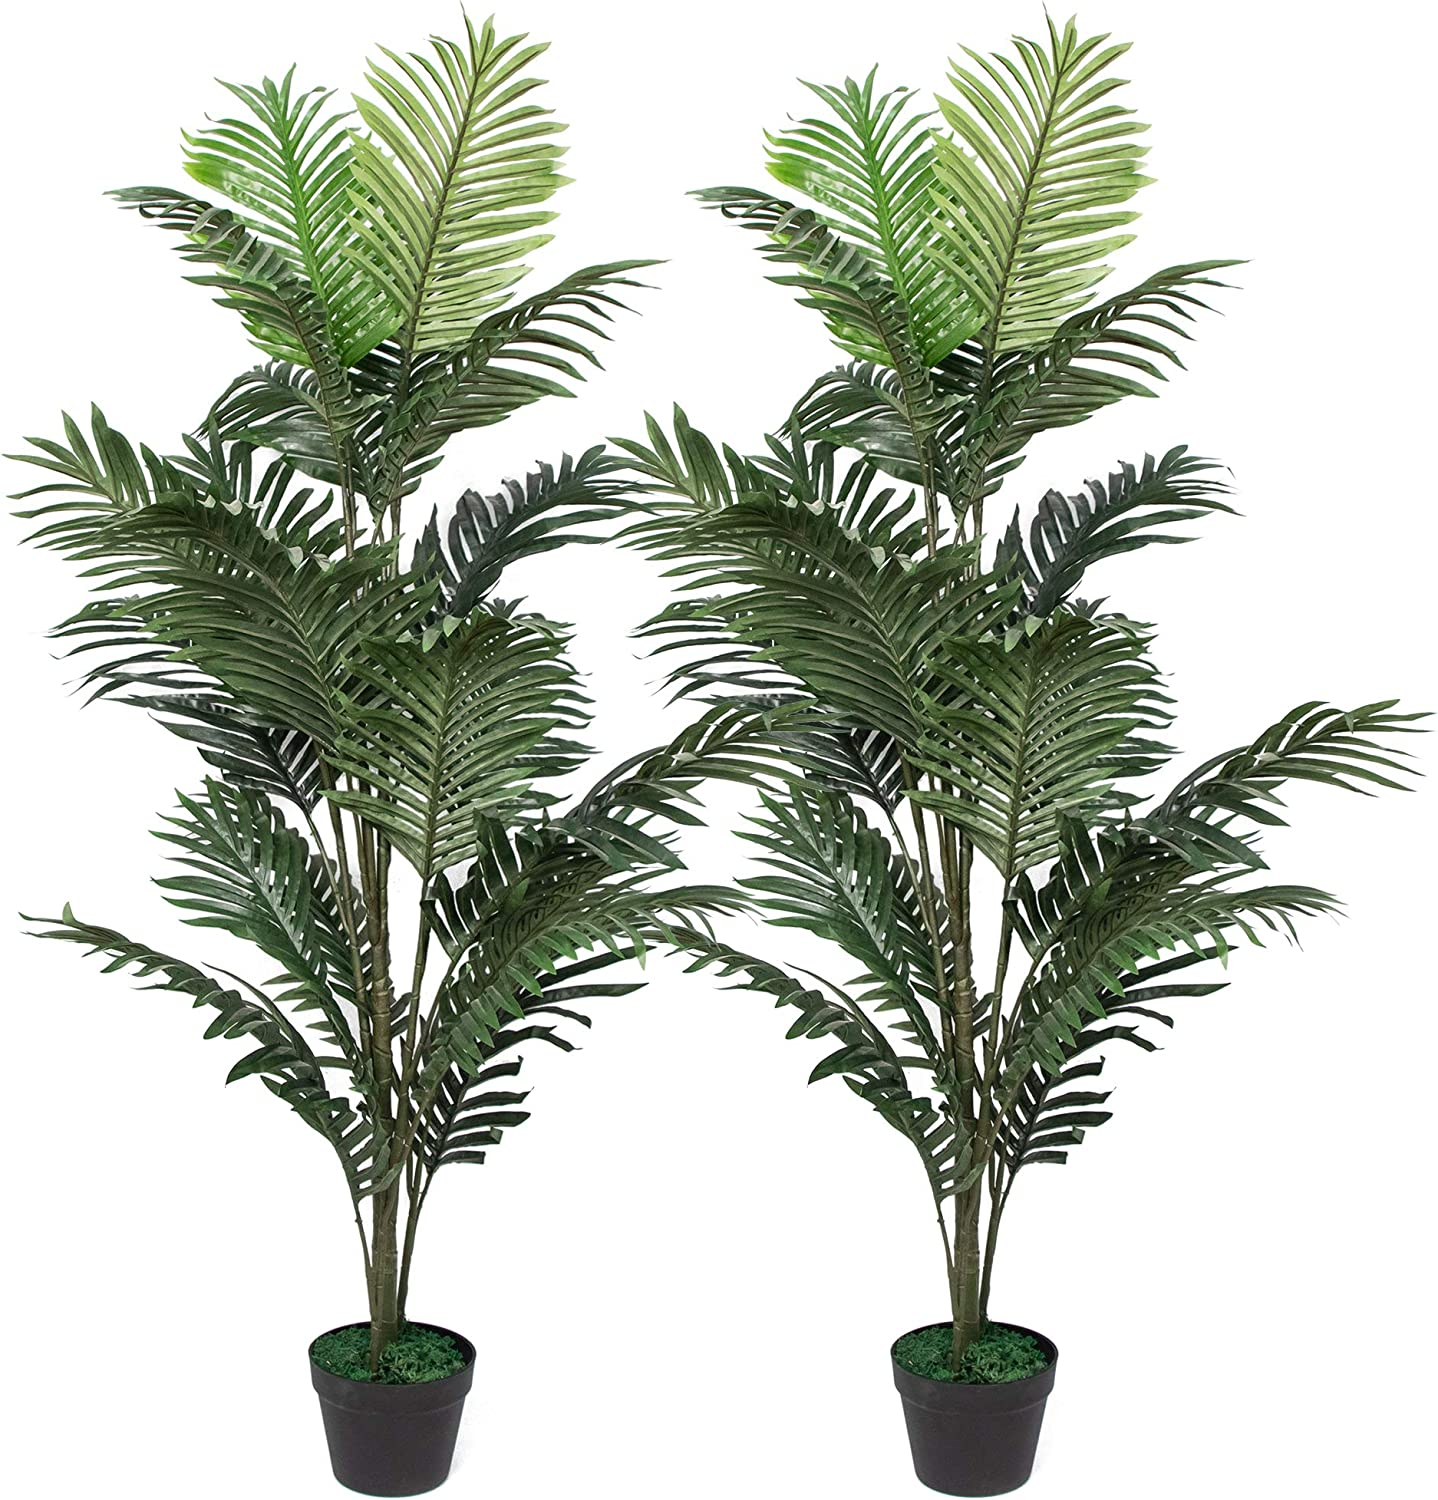 Amazon Com Set Of 2 Artificial Palm Tree In Plastic Pot Potted Fake Greenery Decoration With Bendable Branches For Home Restaurant Cafe Or Office Decorating Kitchen Dining